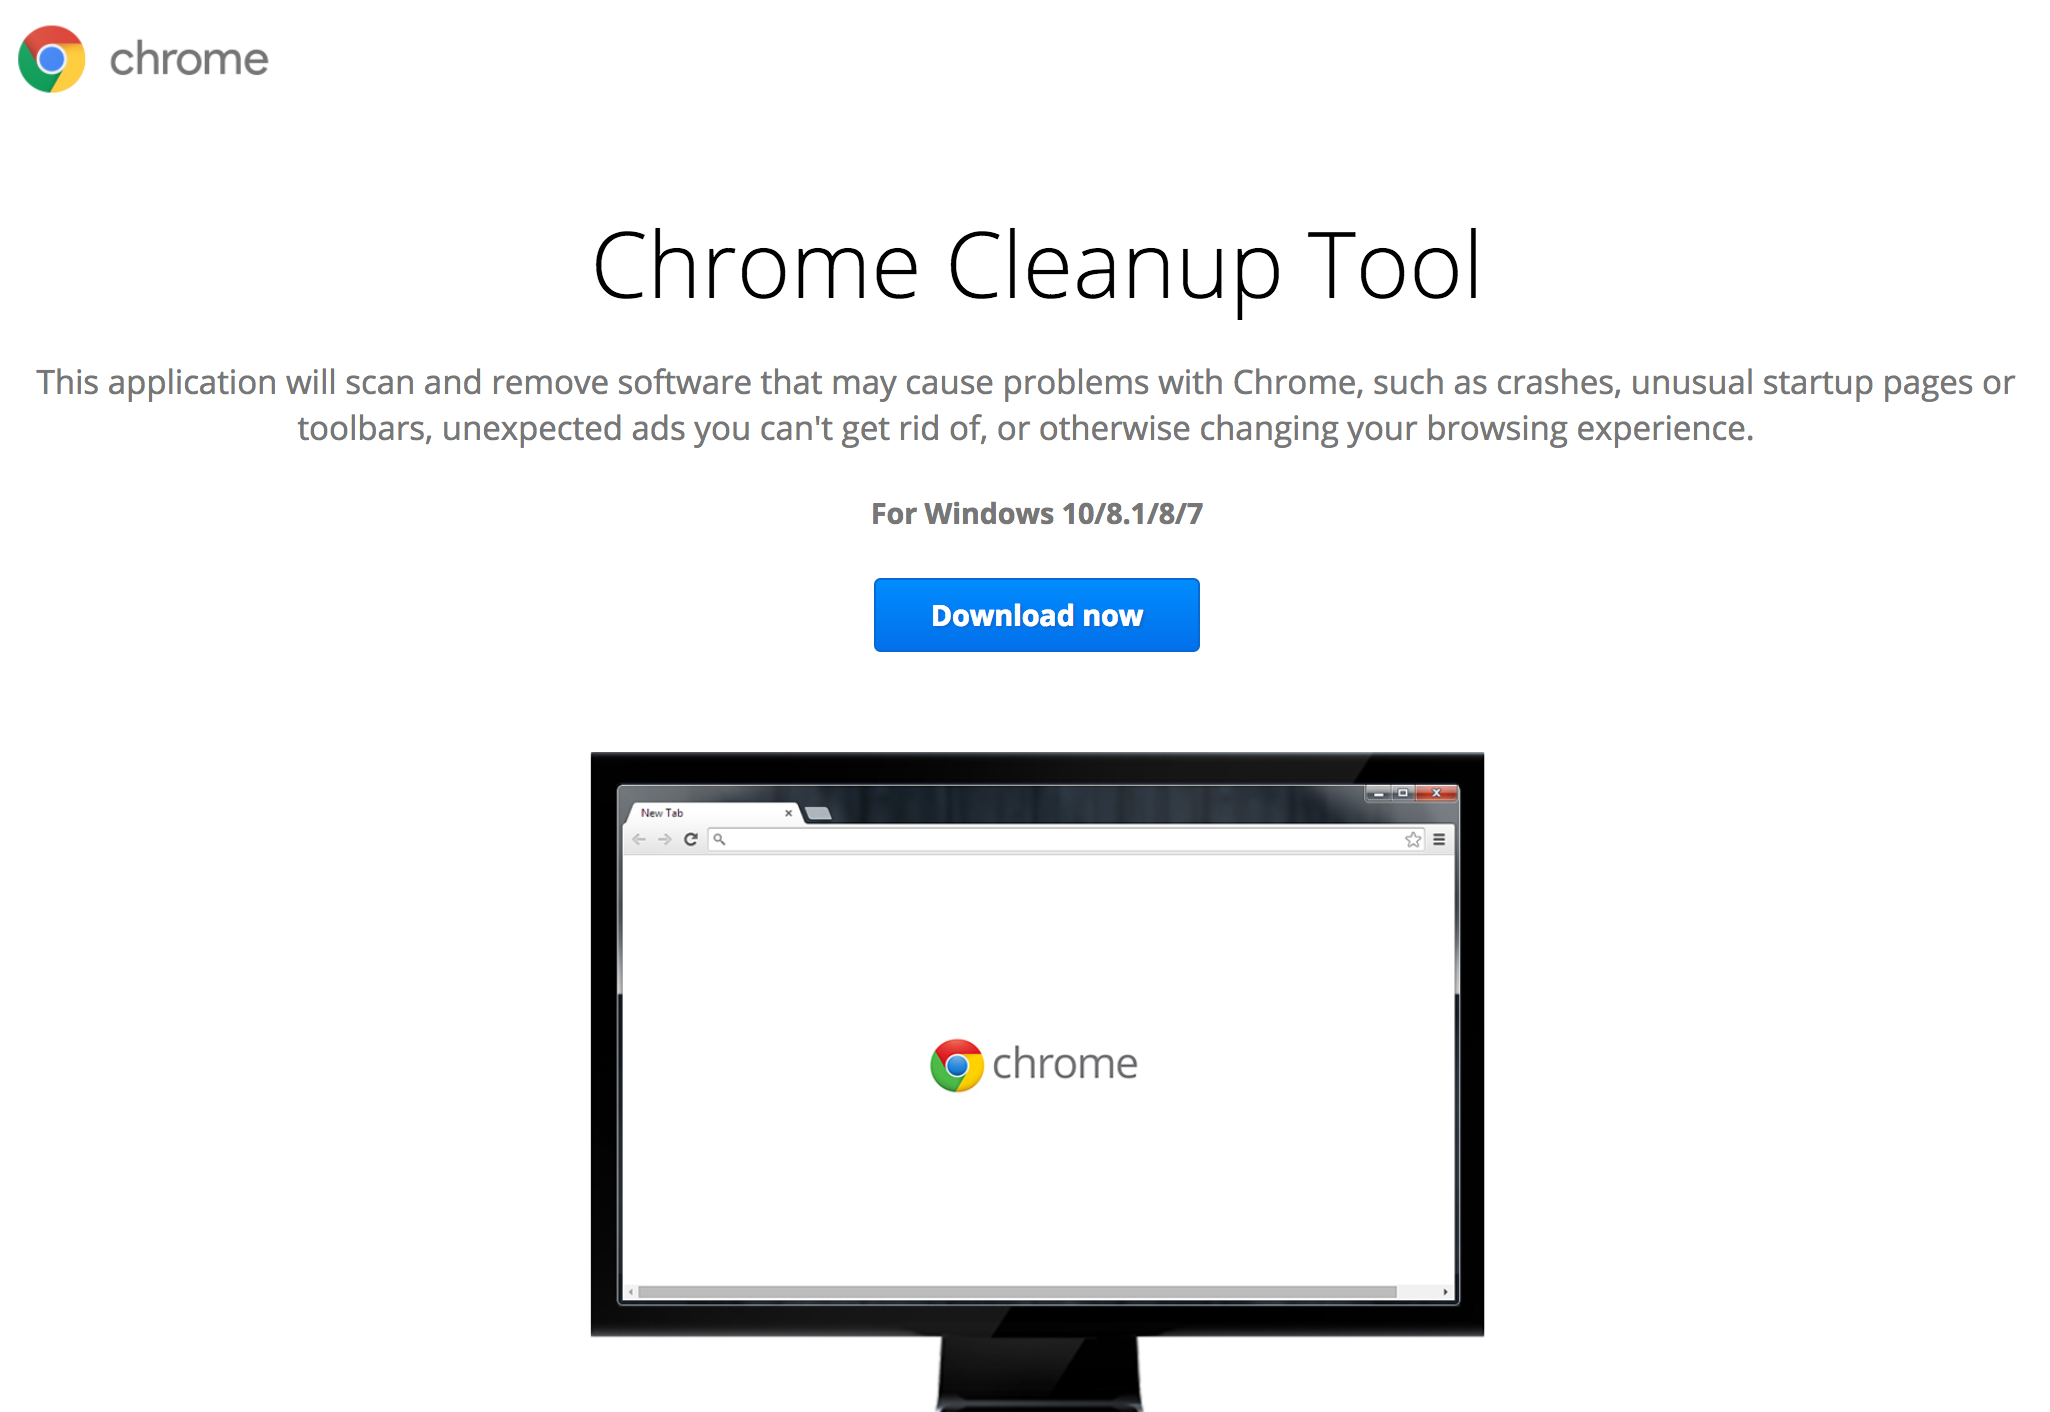 Chrome-Cleanup-Tool-Connections